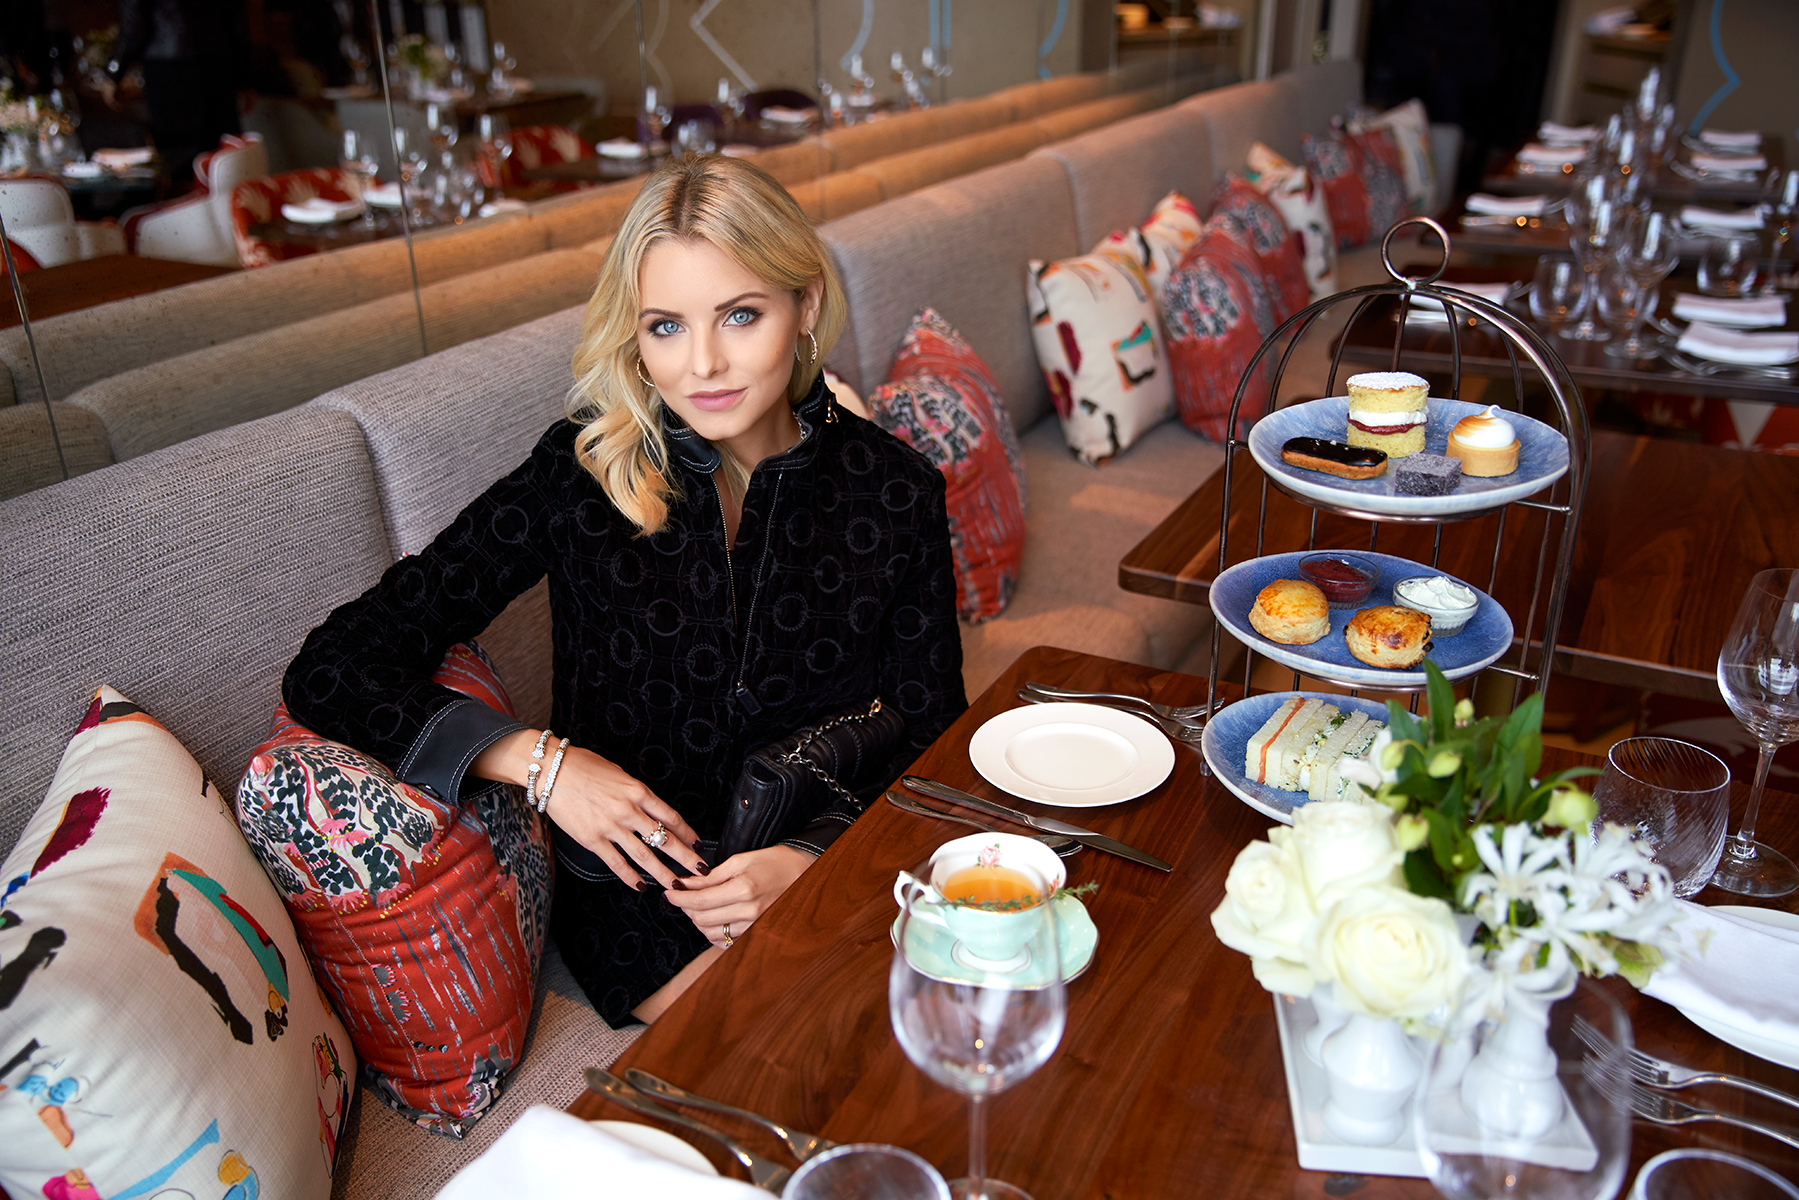 Taking a moment to relax and enjoy high tea at Bluebird London